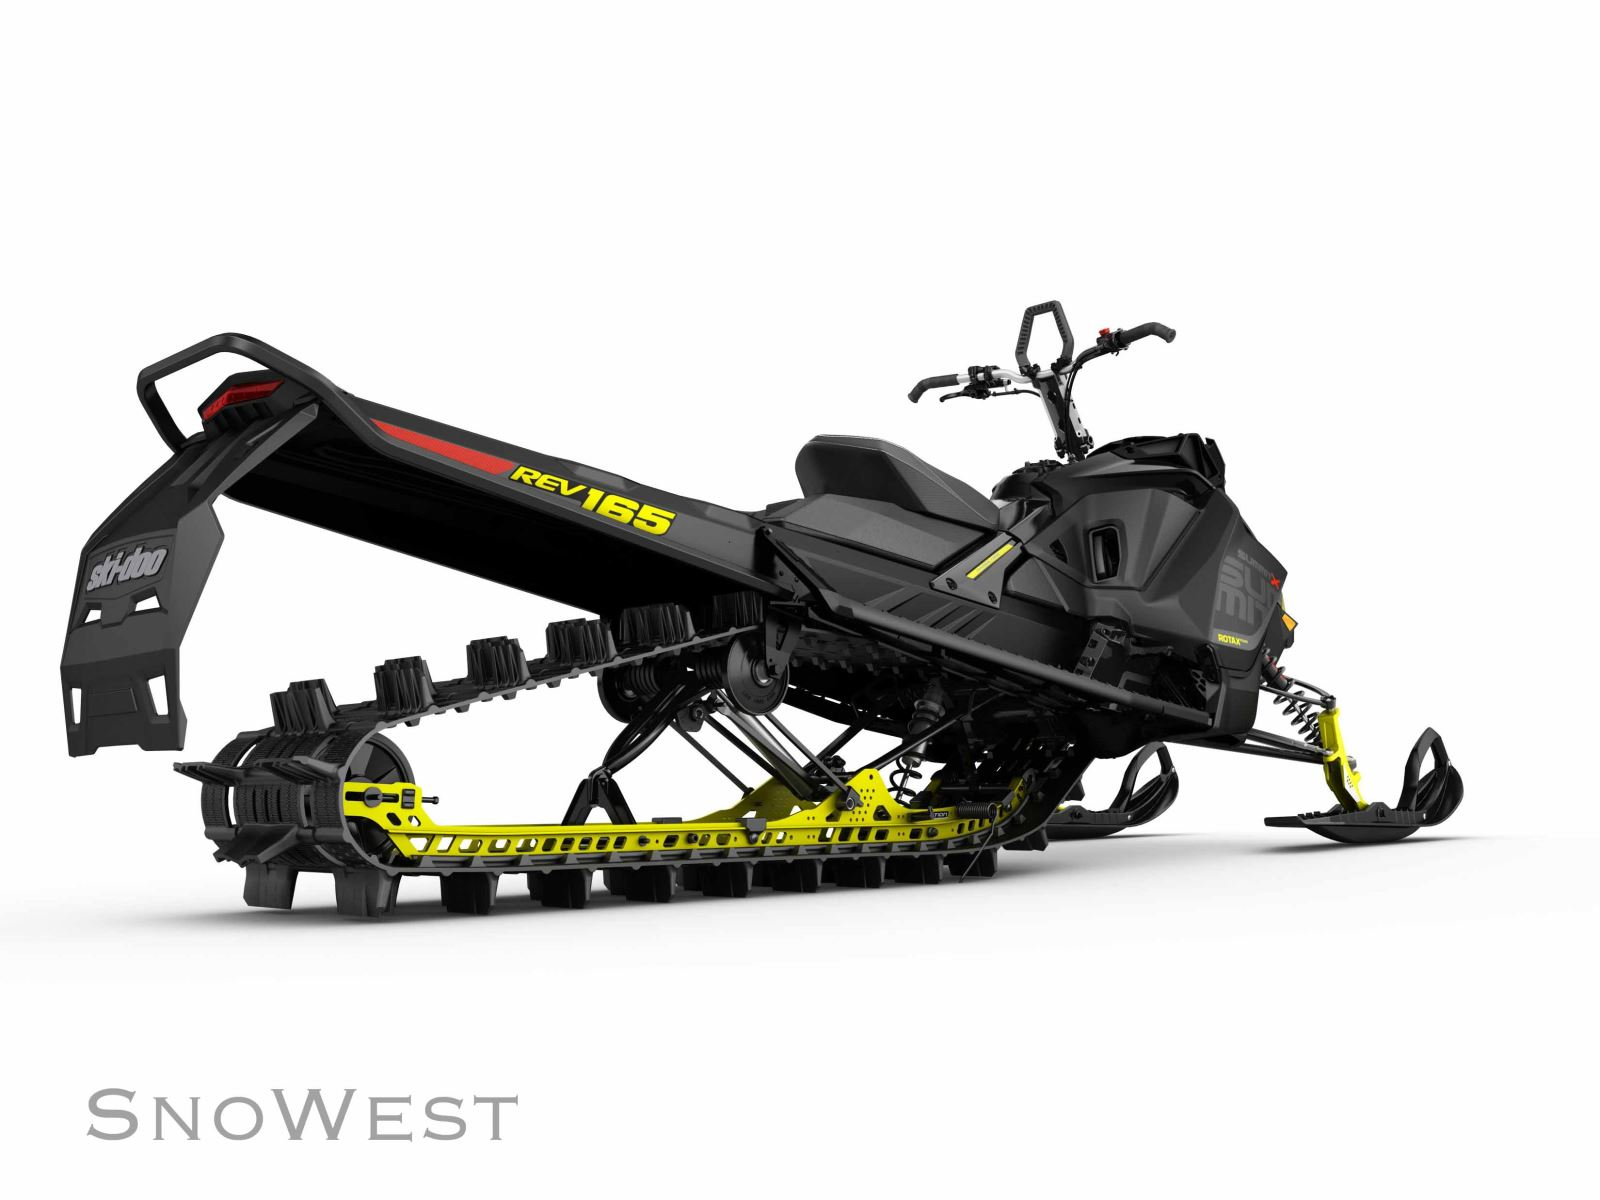 Ski Doo 2017 Everything You Need To Know About The Gen4 850 E Tec